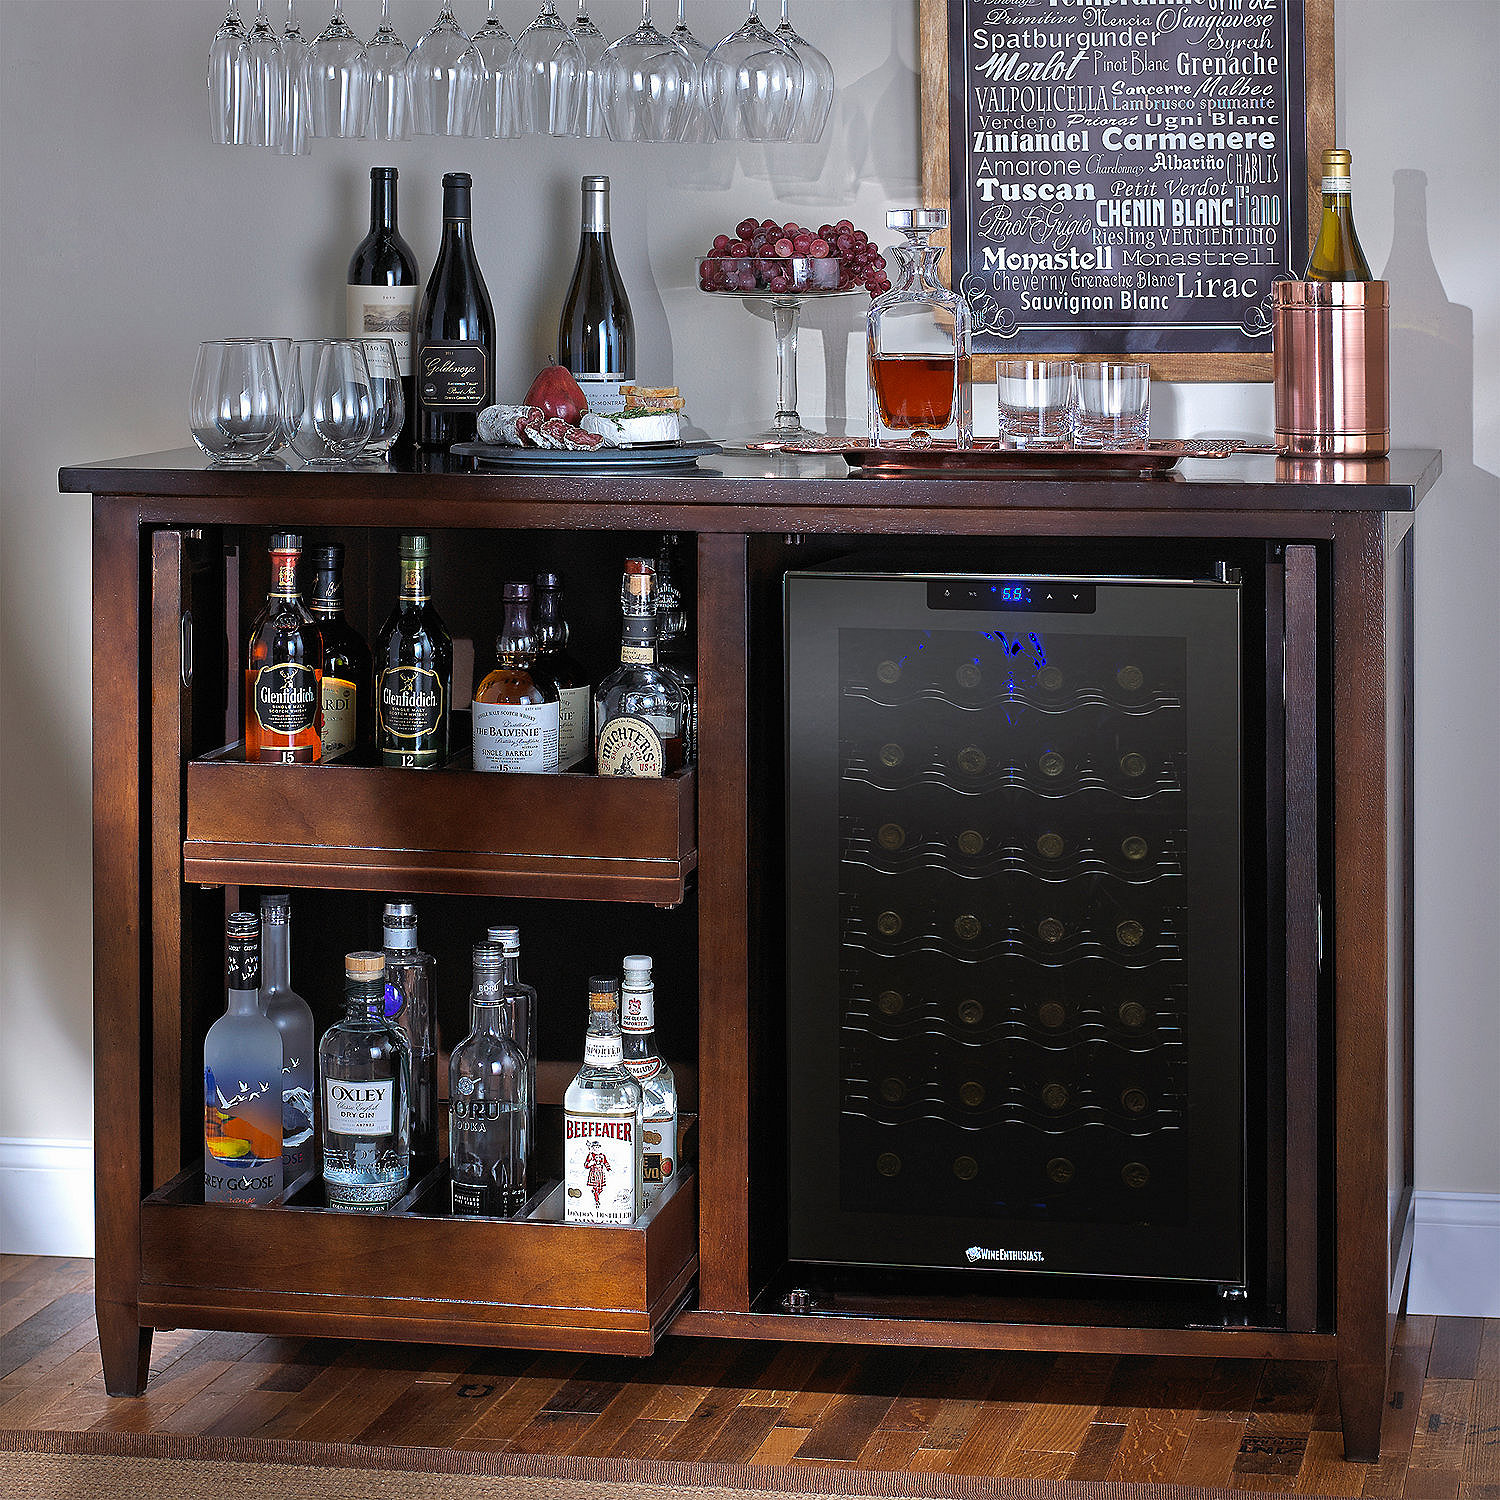 Touchscreen Wine Refrigerator Preparing Zoom